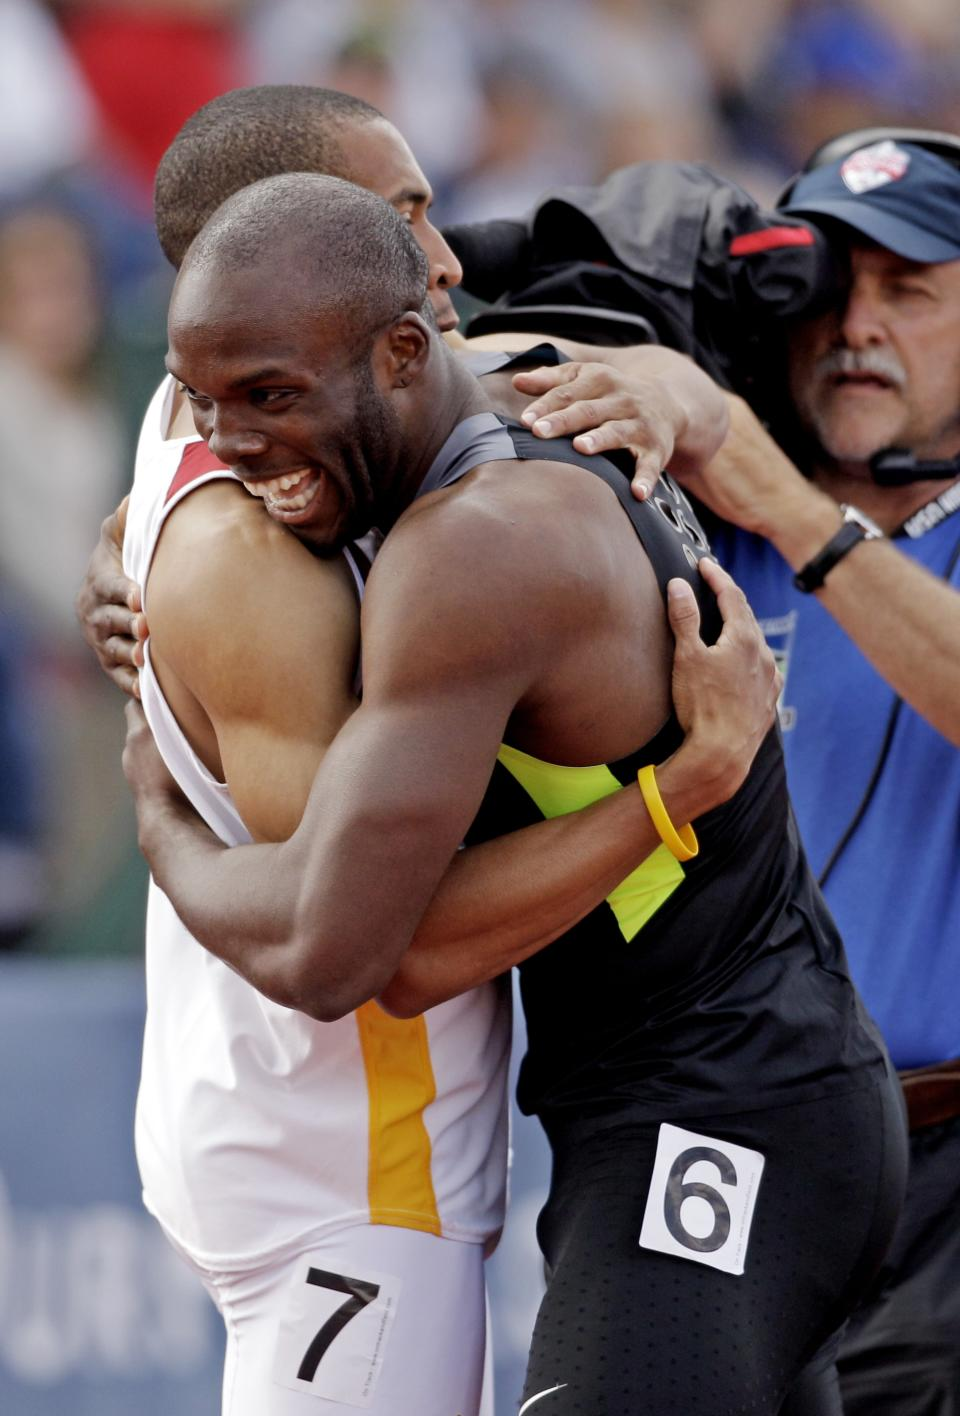 LaShawn Merritt hugs Bryshon Nellum after the men's 400m finals at the U.S. Olympic Track and Field Trials Sunday, June 24, 2012, in Eugene, Ore. (AP Photo/Marcio Jose Sanchez)